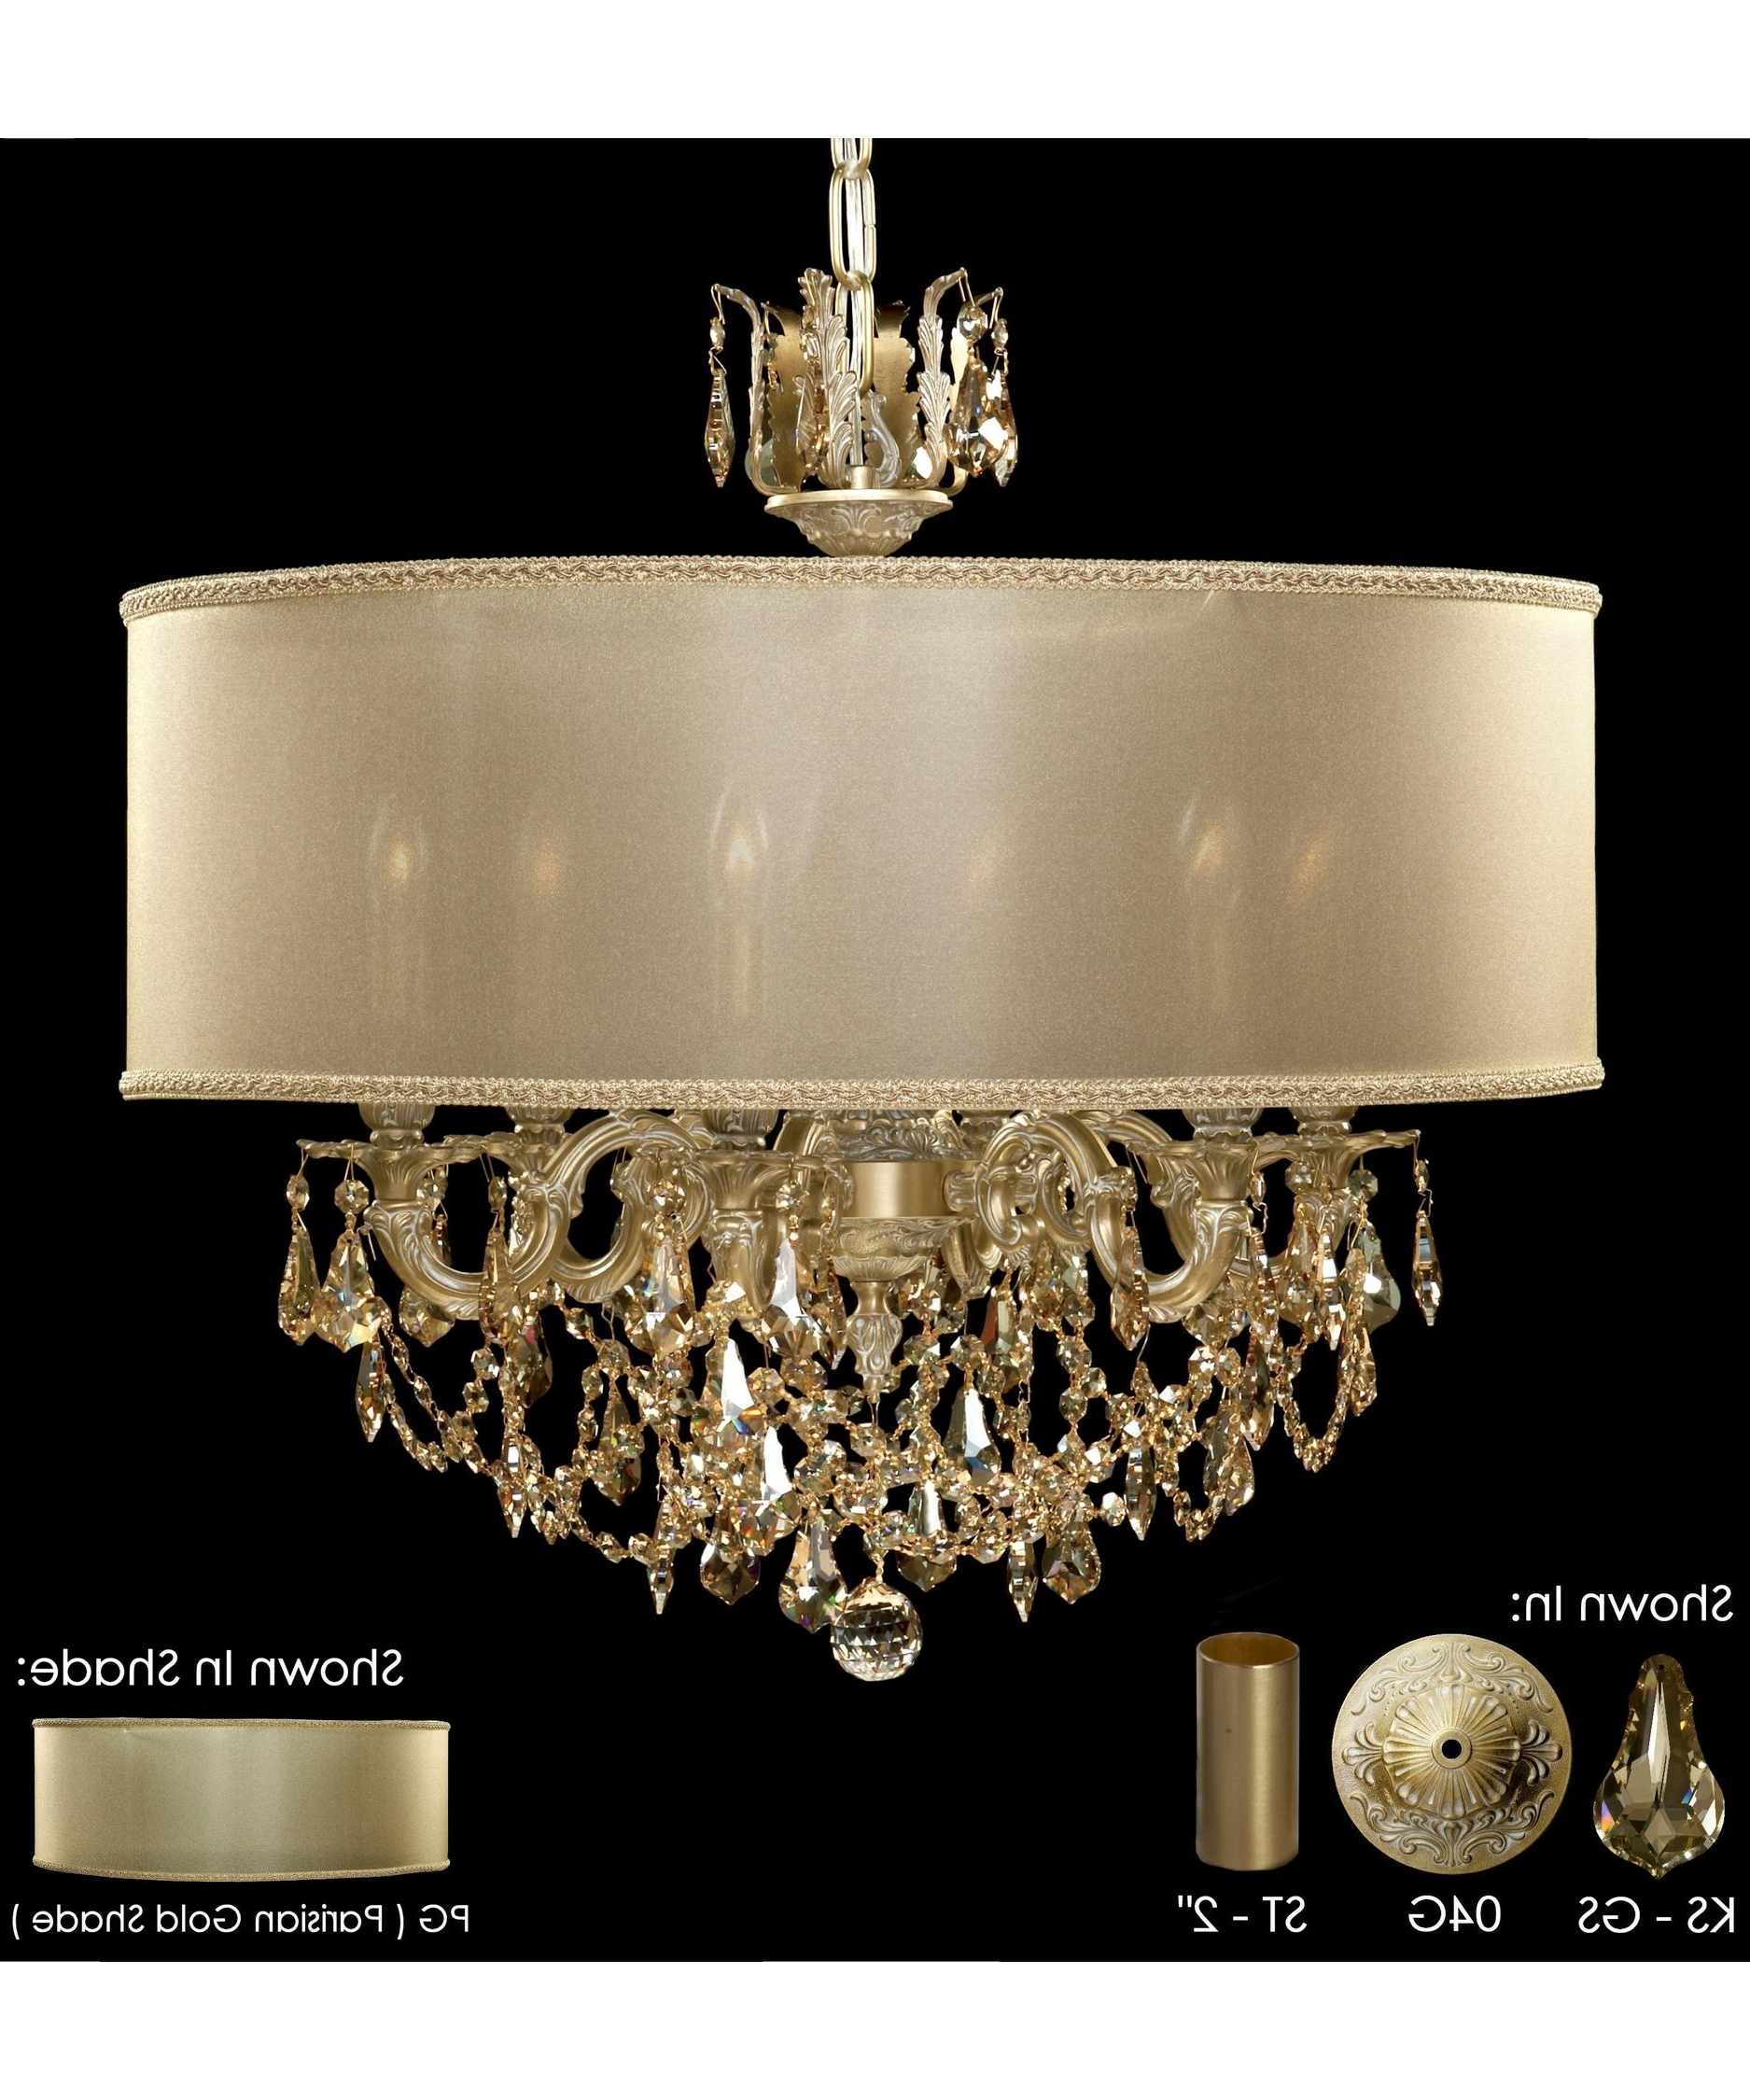 American Brass And Crystal Ch6522 Llydia 24 Inch Wide 6 Light Pertaining To Favorite Brass Chandeliers (View 12 of 15)